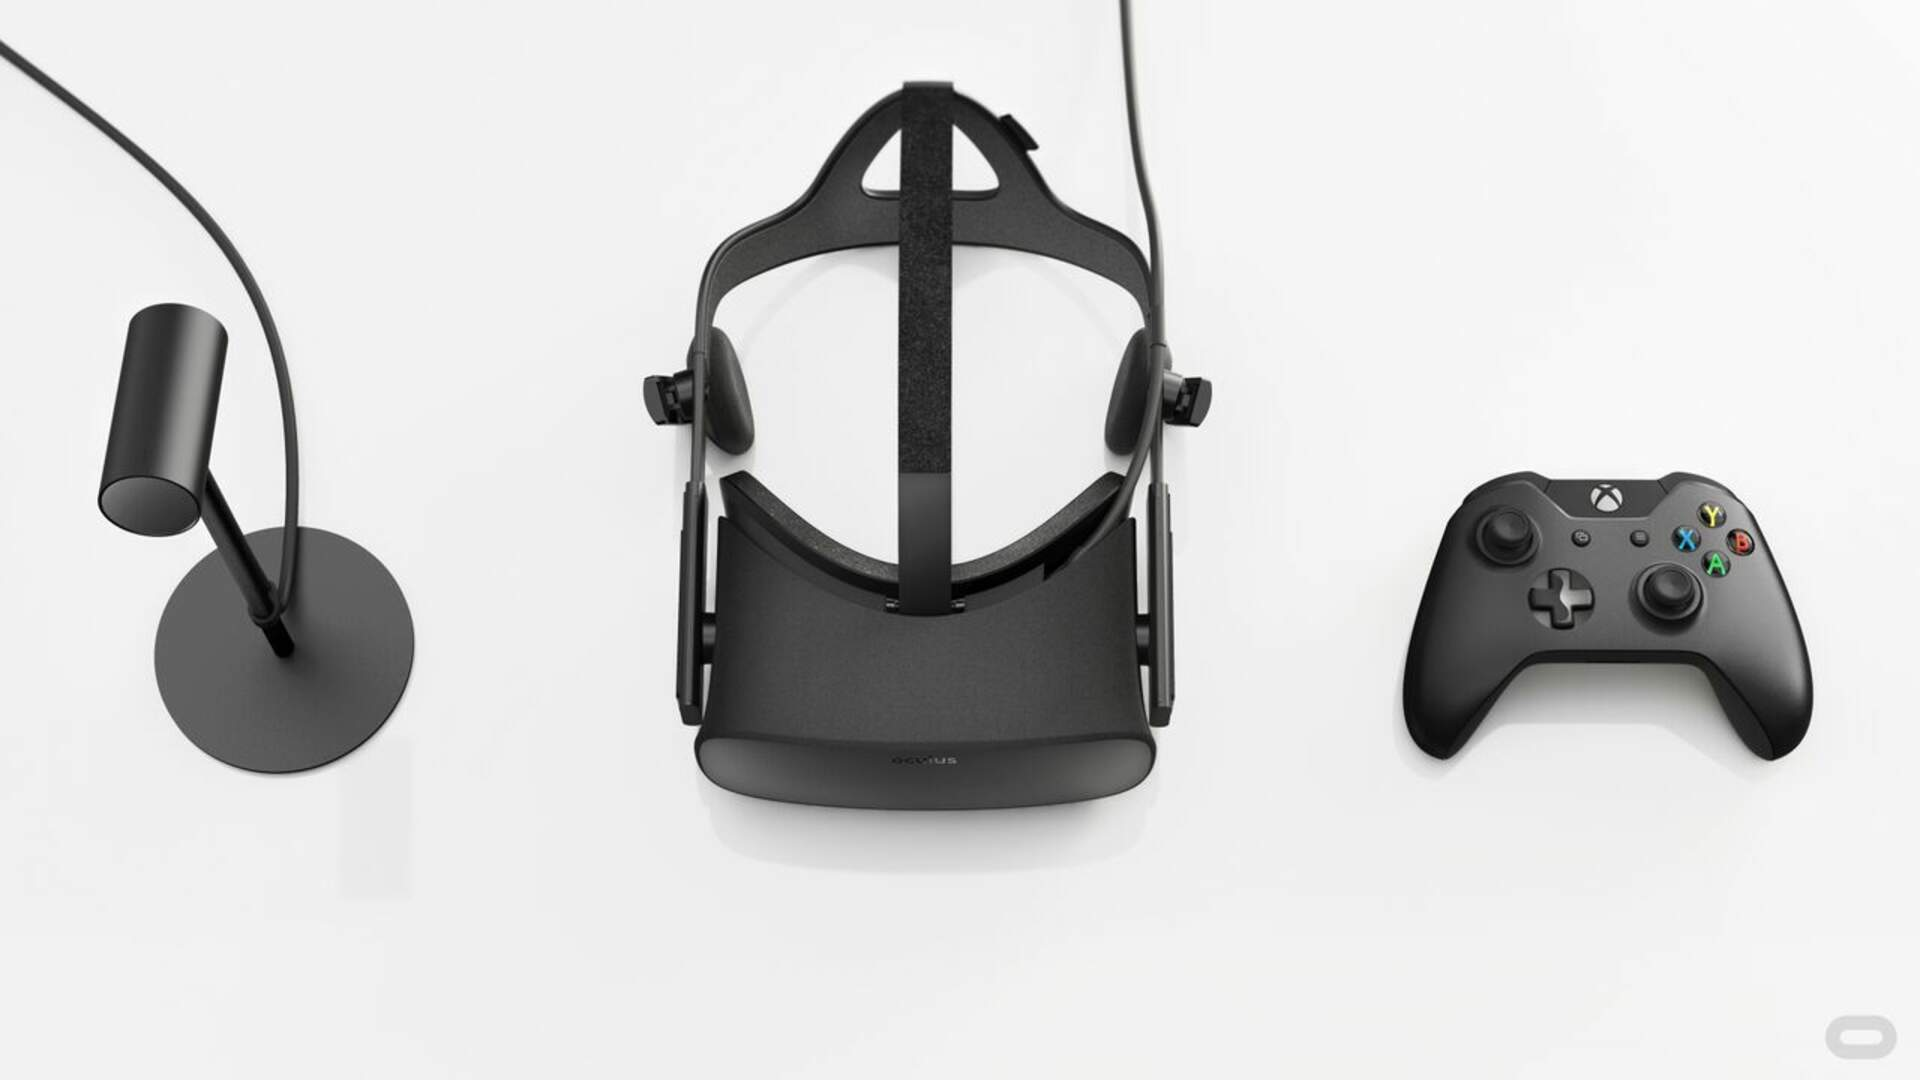 Newegg's Black Friday Deals Includes a Sale on the Oculus Rift